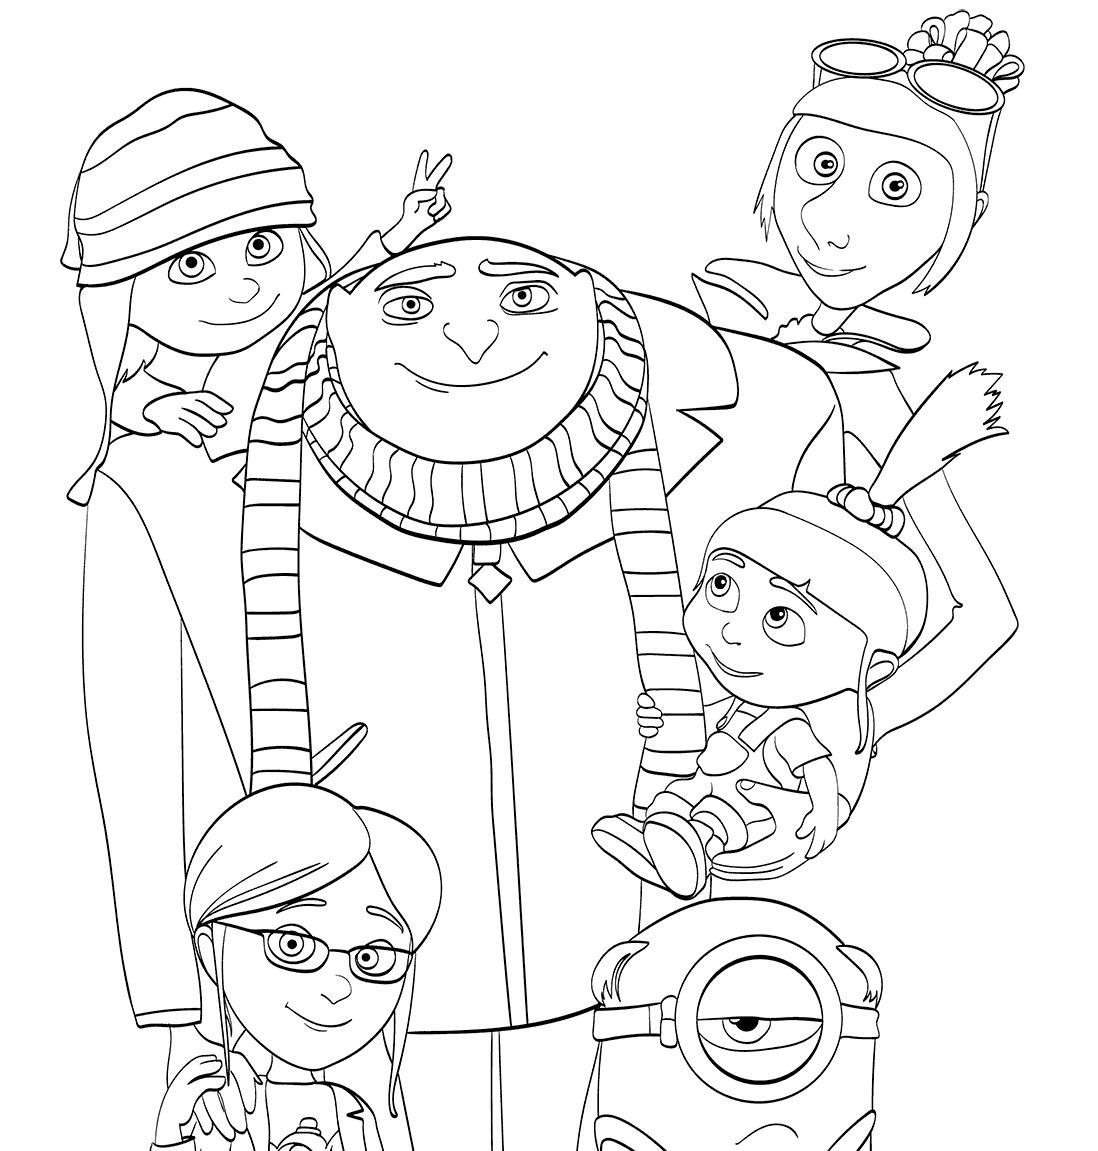 despicable me coloring sheets for kids despicable me coloring pages cakes transfer sheets despicable coloring me